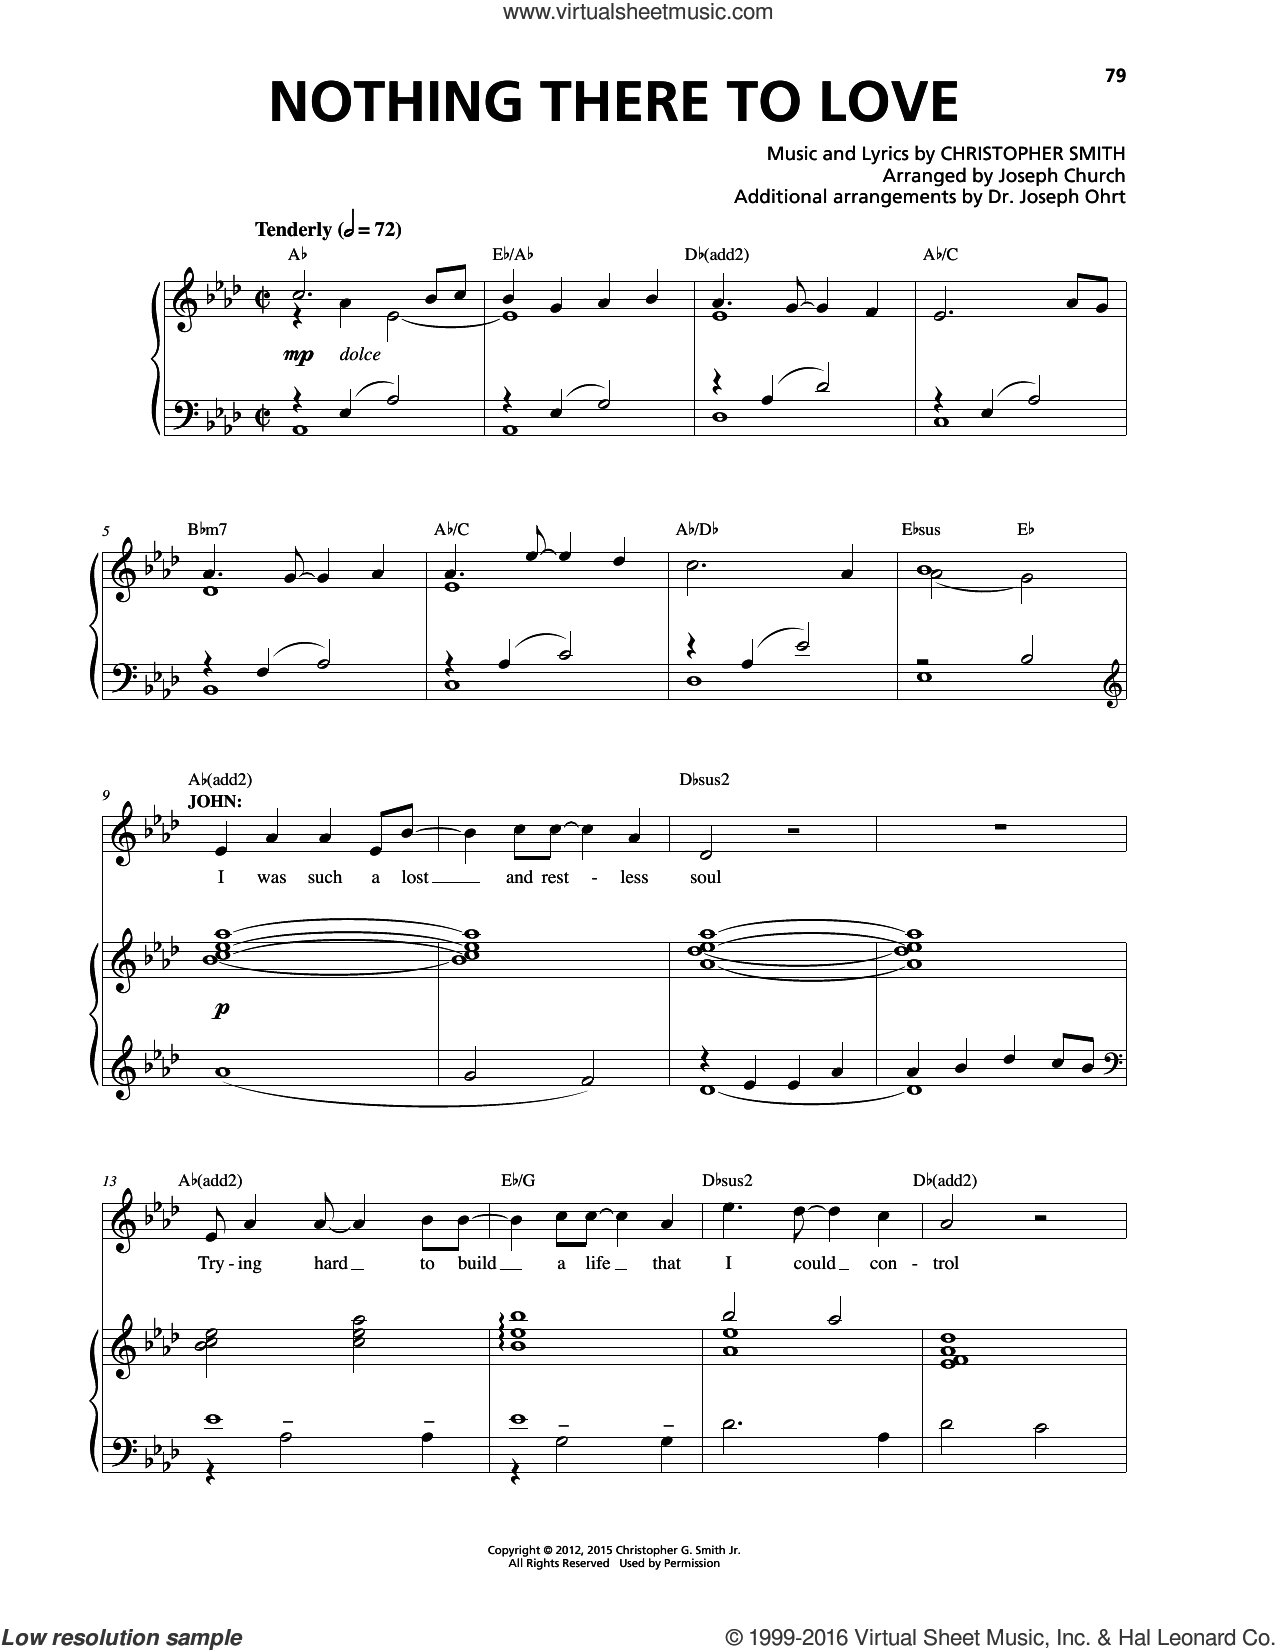 Nothing There To Love sheet music for voice and piano by Christopher Smith. Score Image Preview.